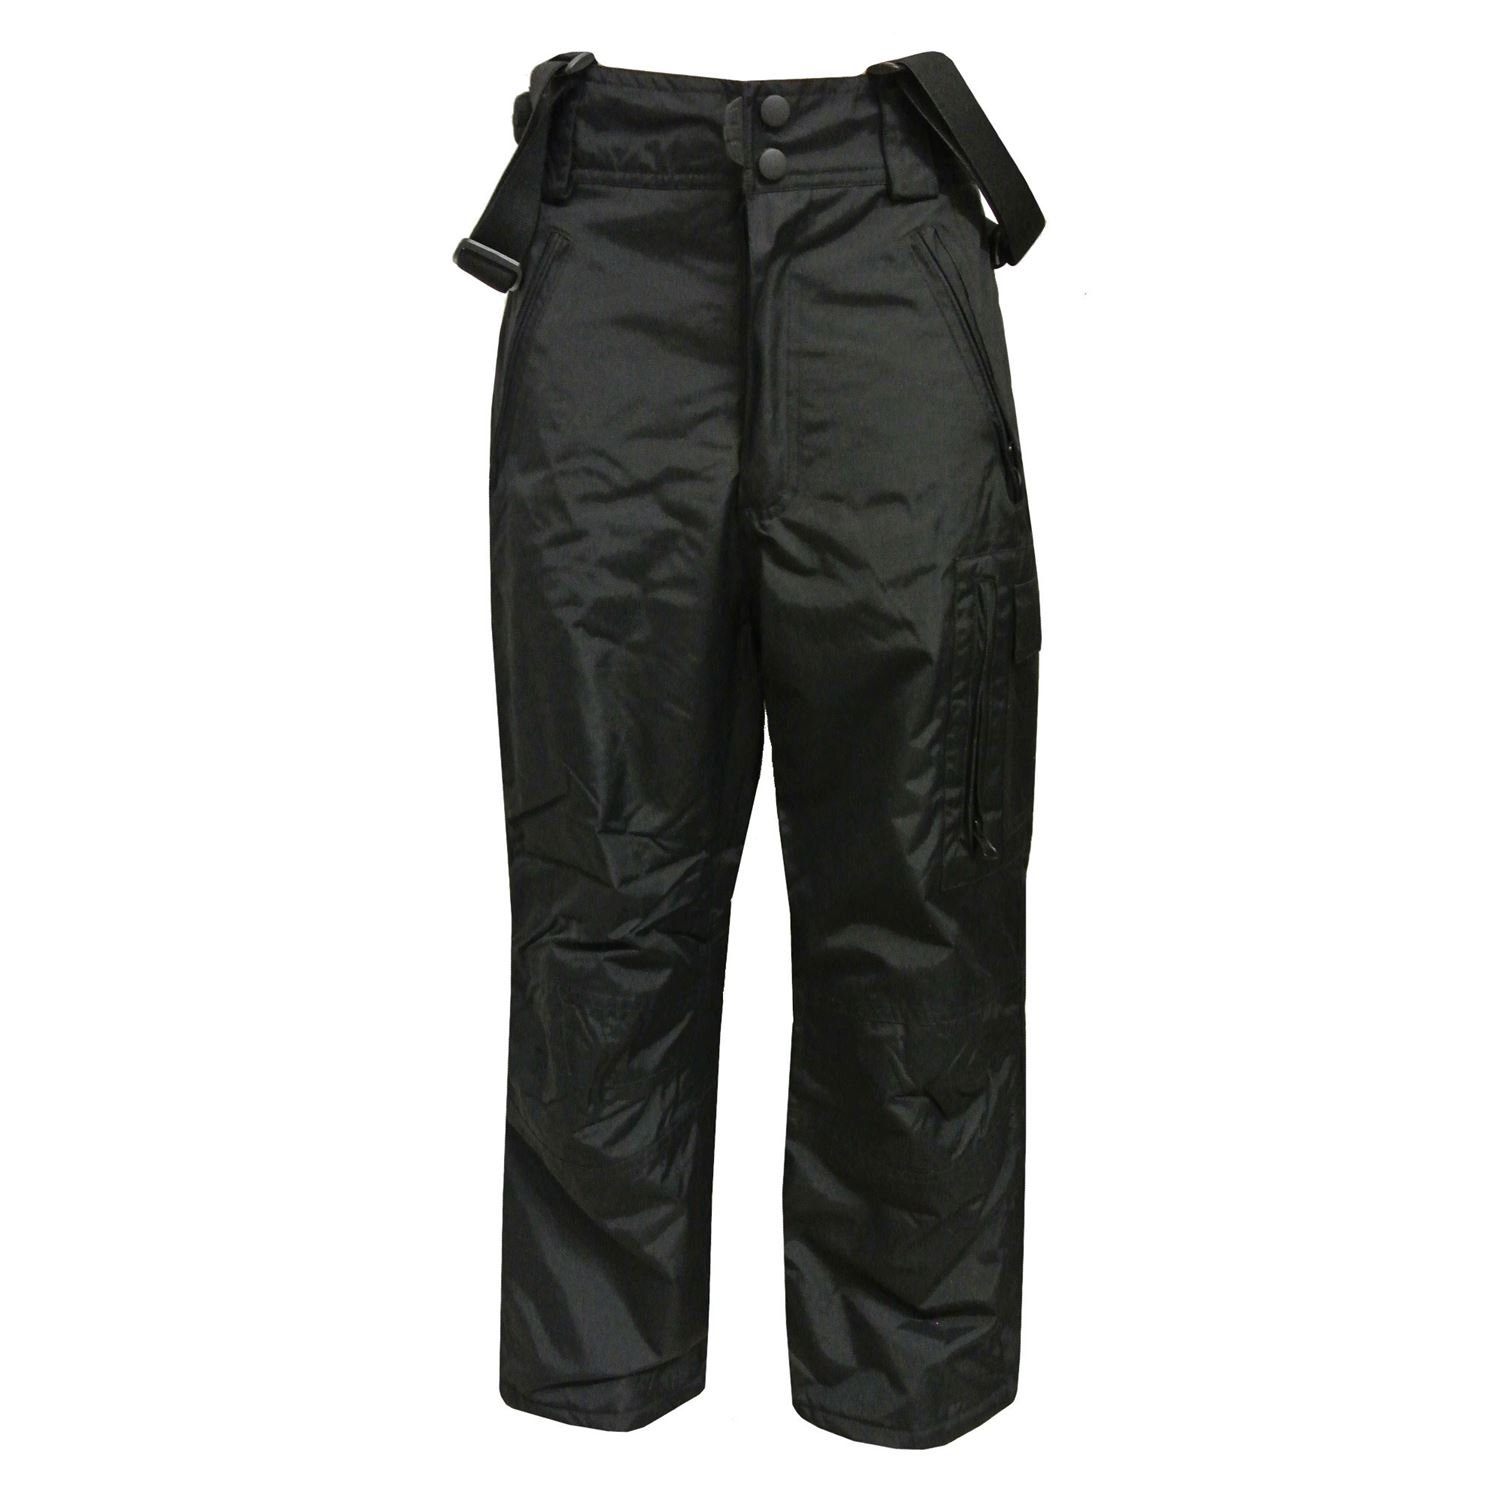 Outburst - Ski pants snow pants 10,000 mm water column ski pants snow pants boys, black